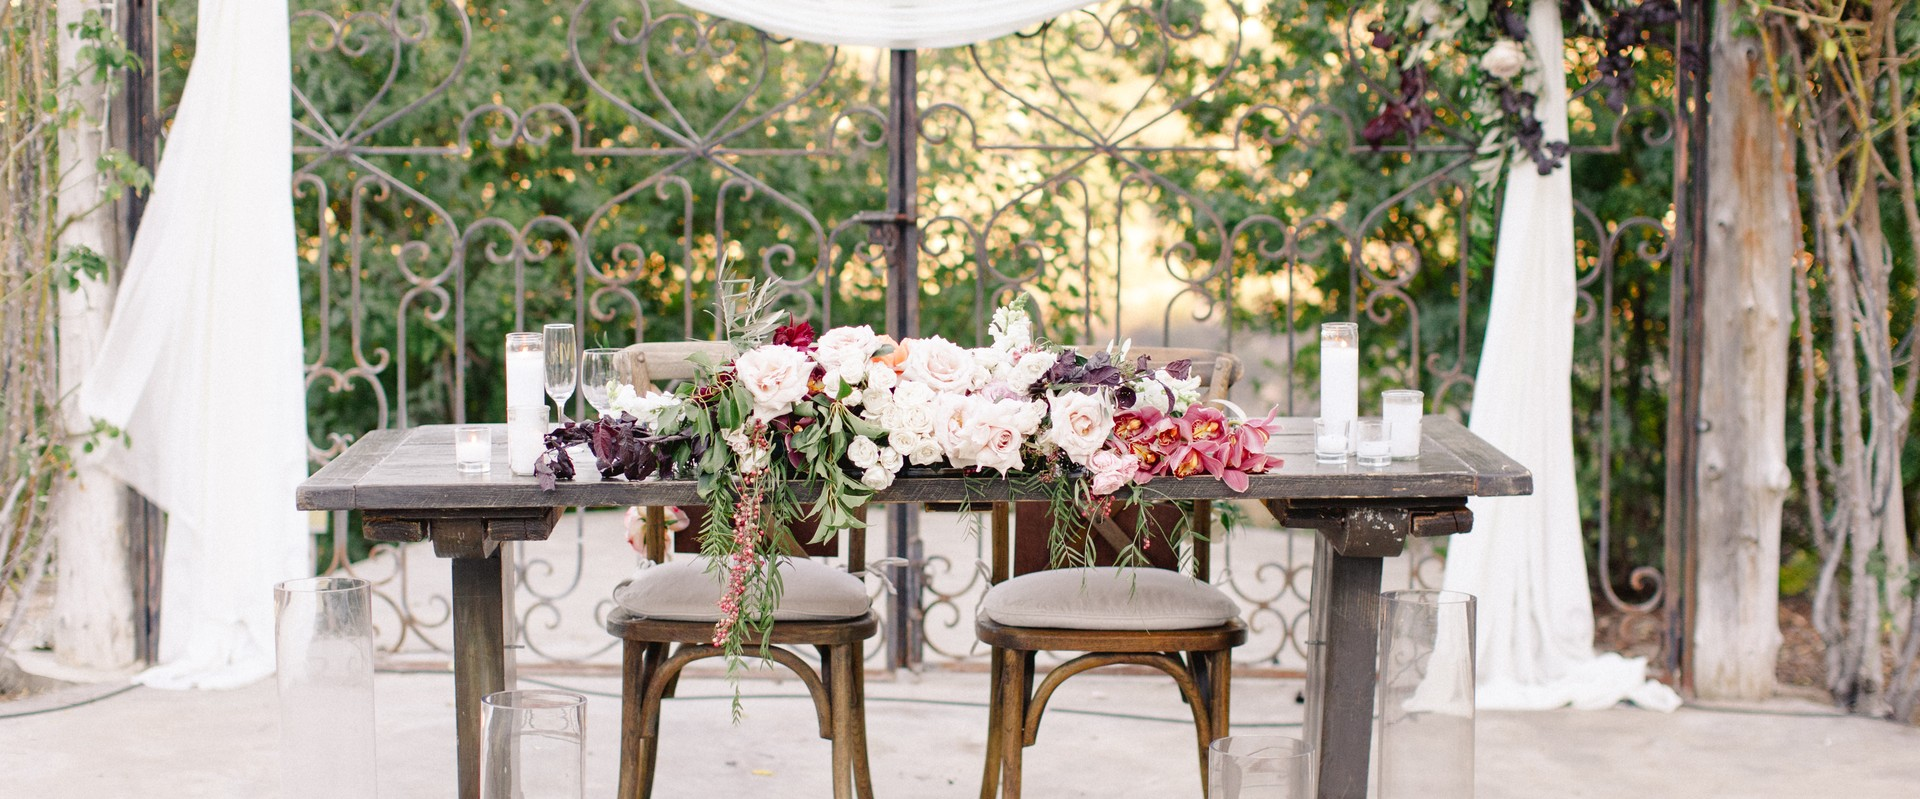 How Much Should I Spend on Wedding Flowers?